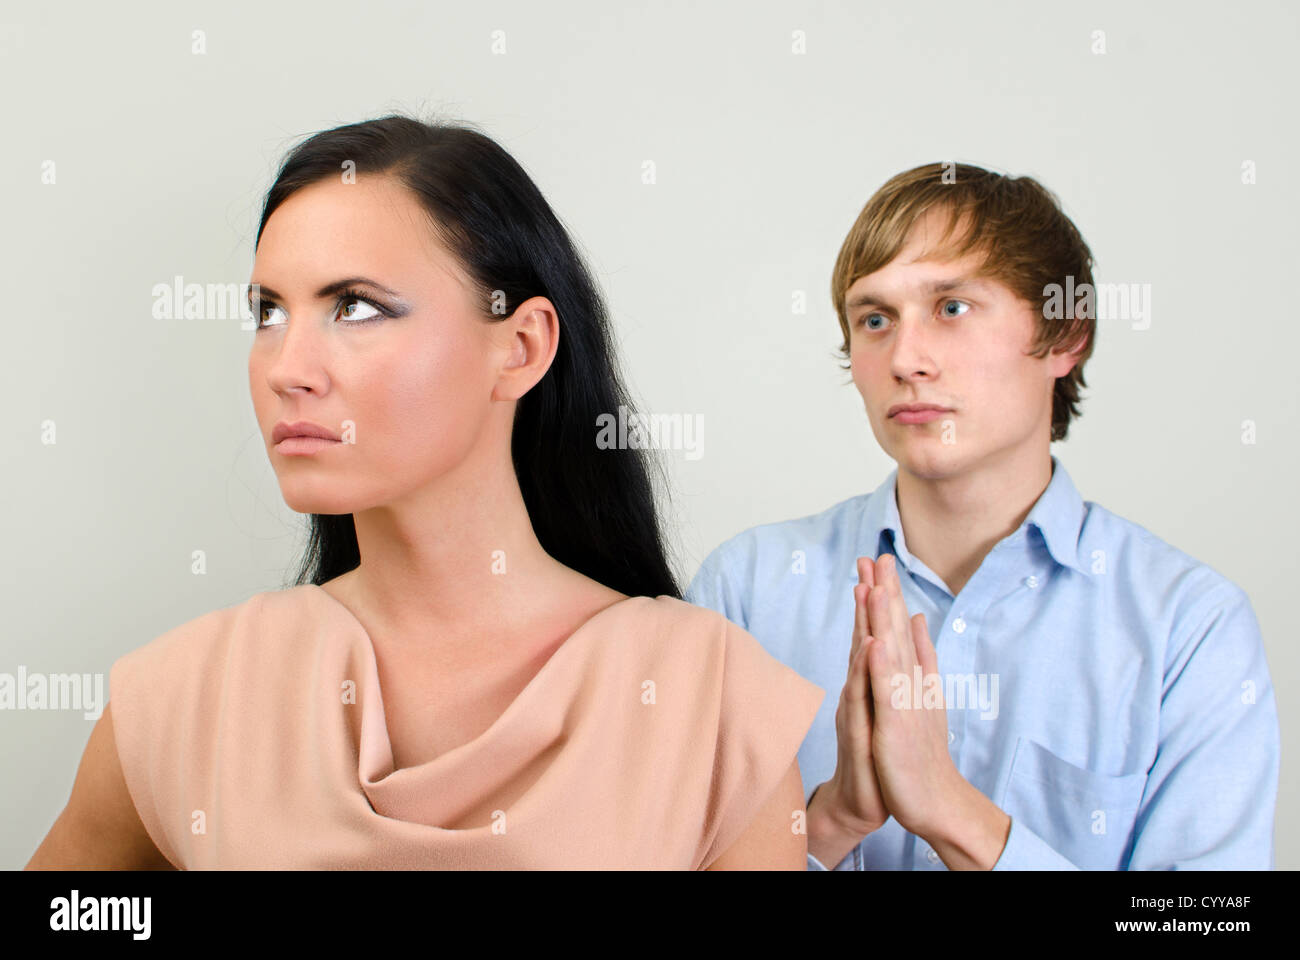 Young couple quarreling. Man asks for forgiveness. - Stock Image